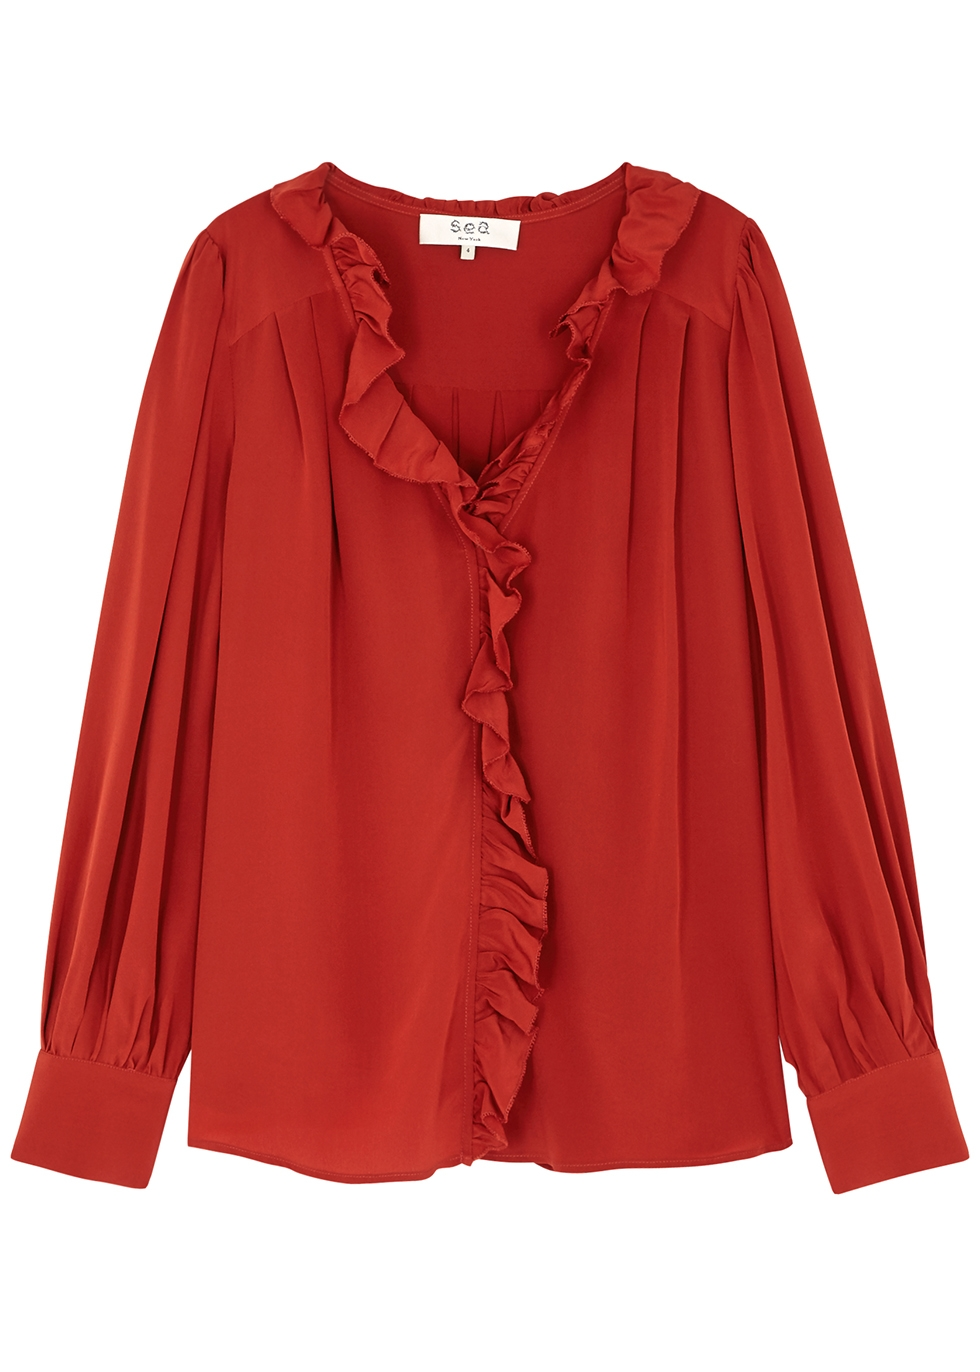 SEA NY Suki Ruffle-Trimmed Silk Blouse in Red